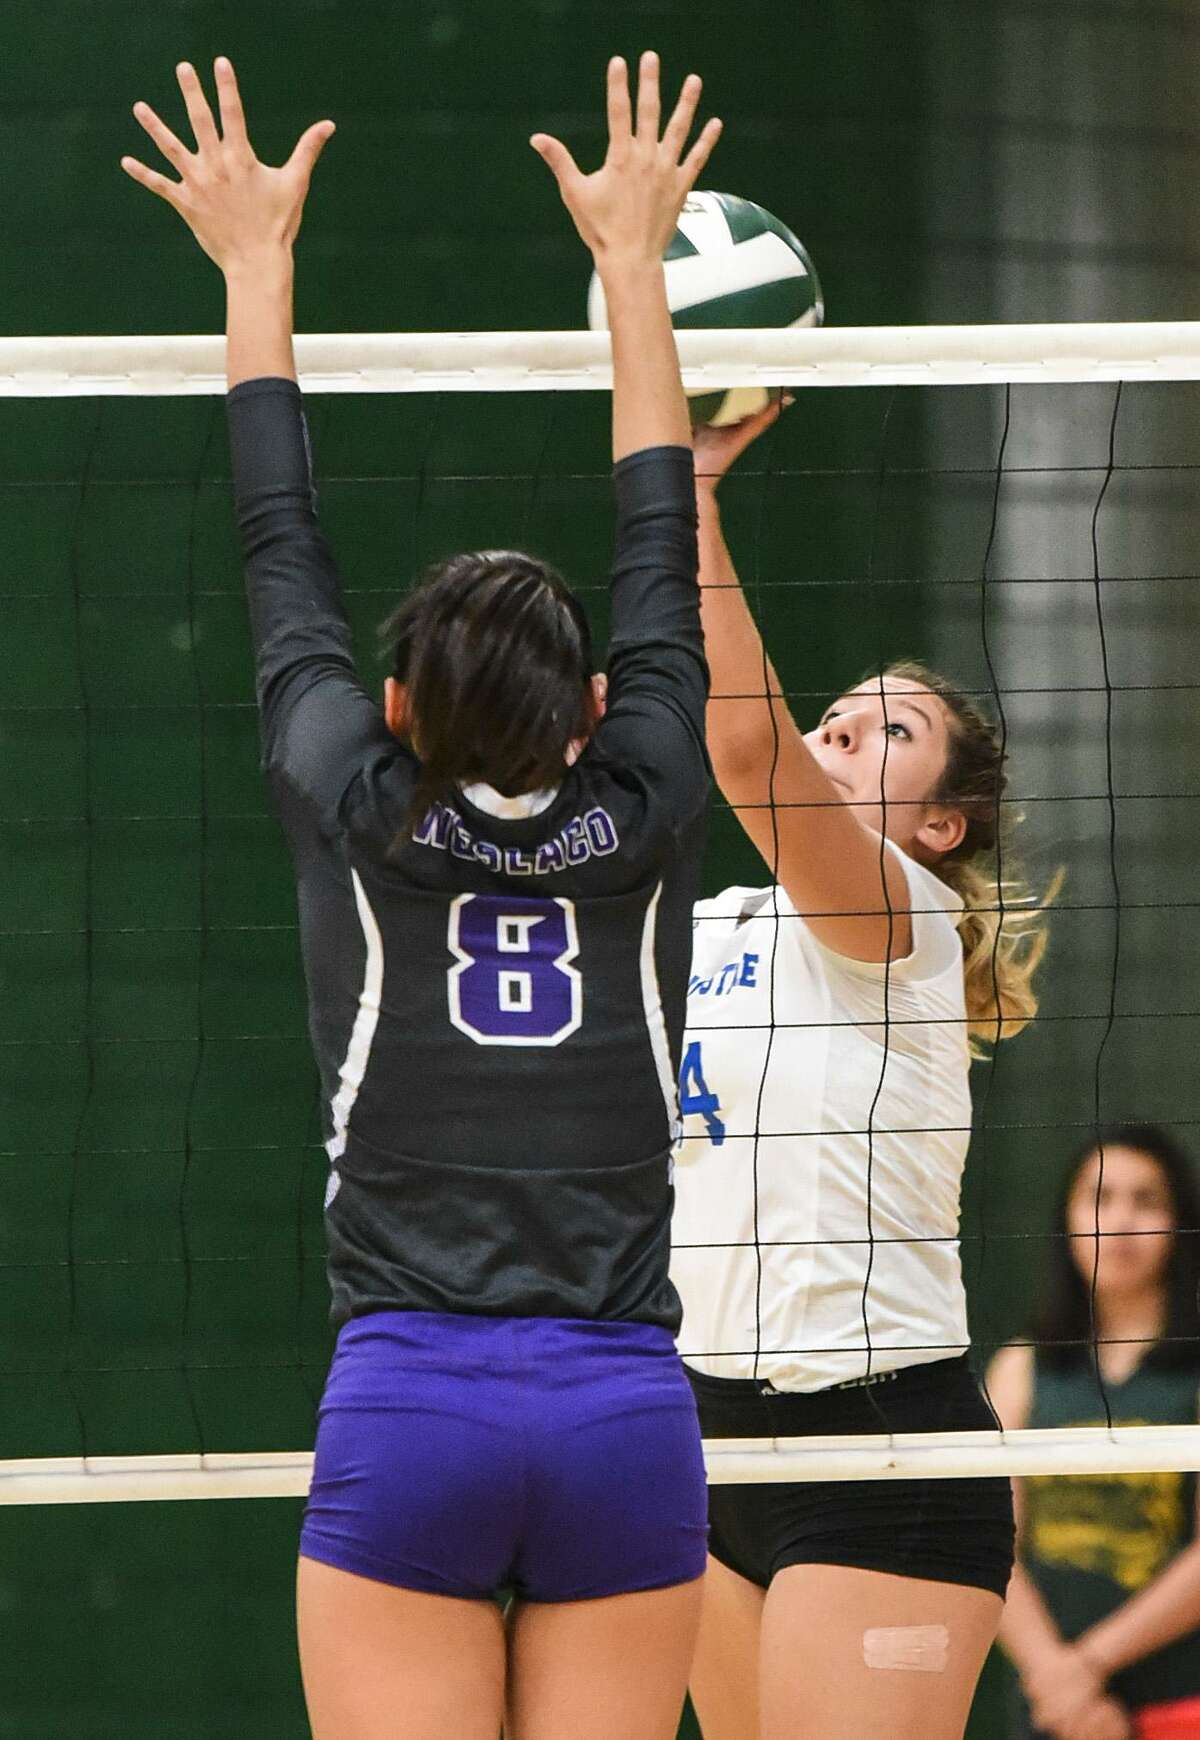 Karla Benavides and St. Augustine rallied from down 0-2 Monday for a 3-2 (17-25, 20-25, 25-12, 25-22, 15-7) win over Cigarroa.